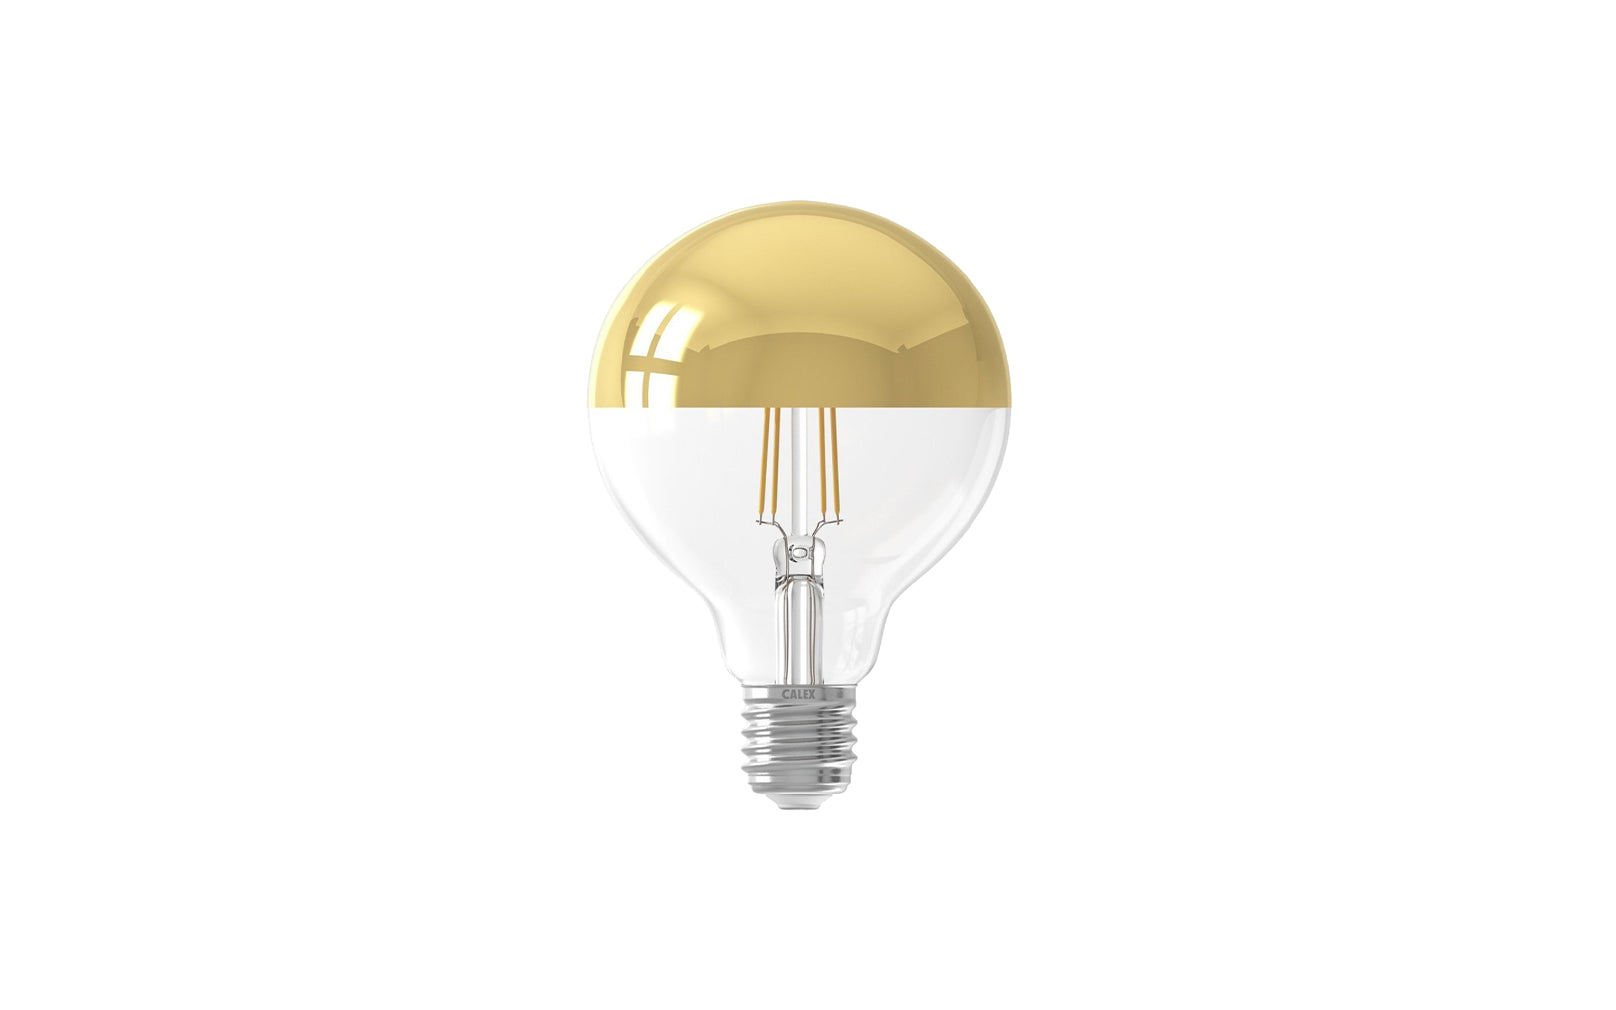 Calex LED 4W Crown Gold 95mm E27 Bulb